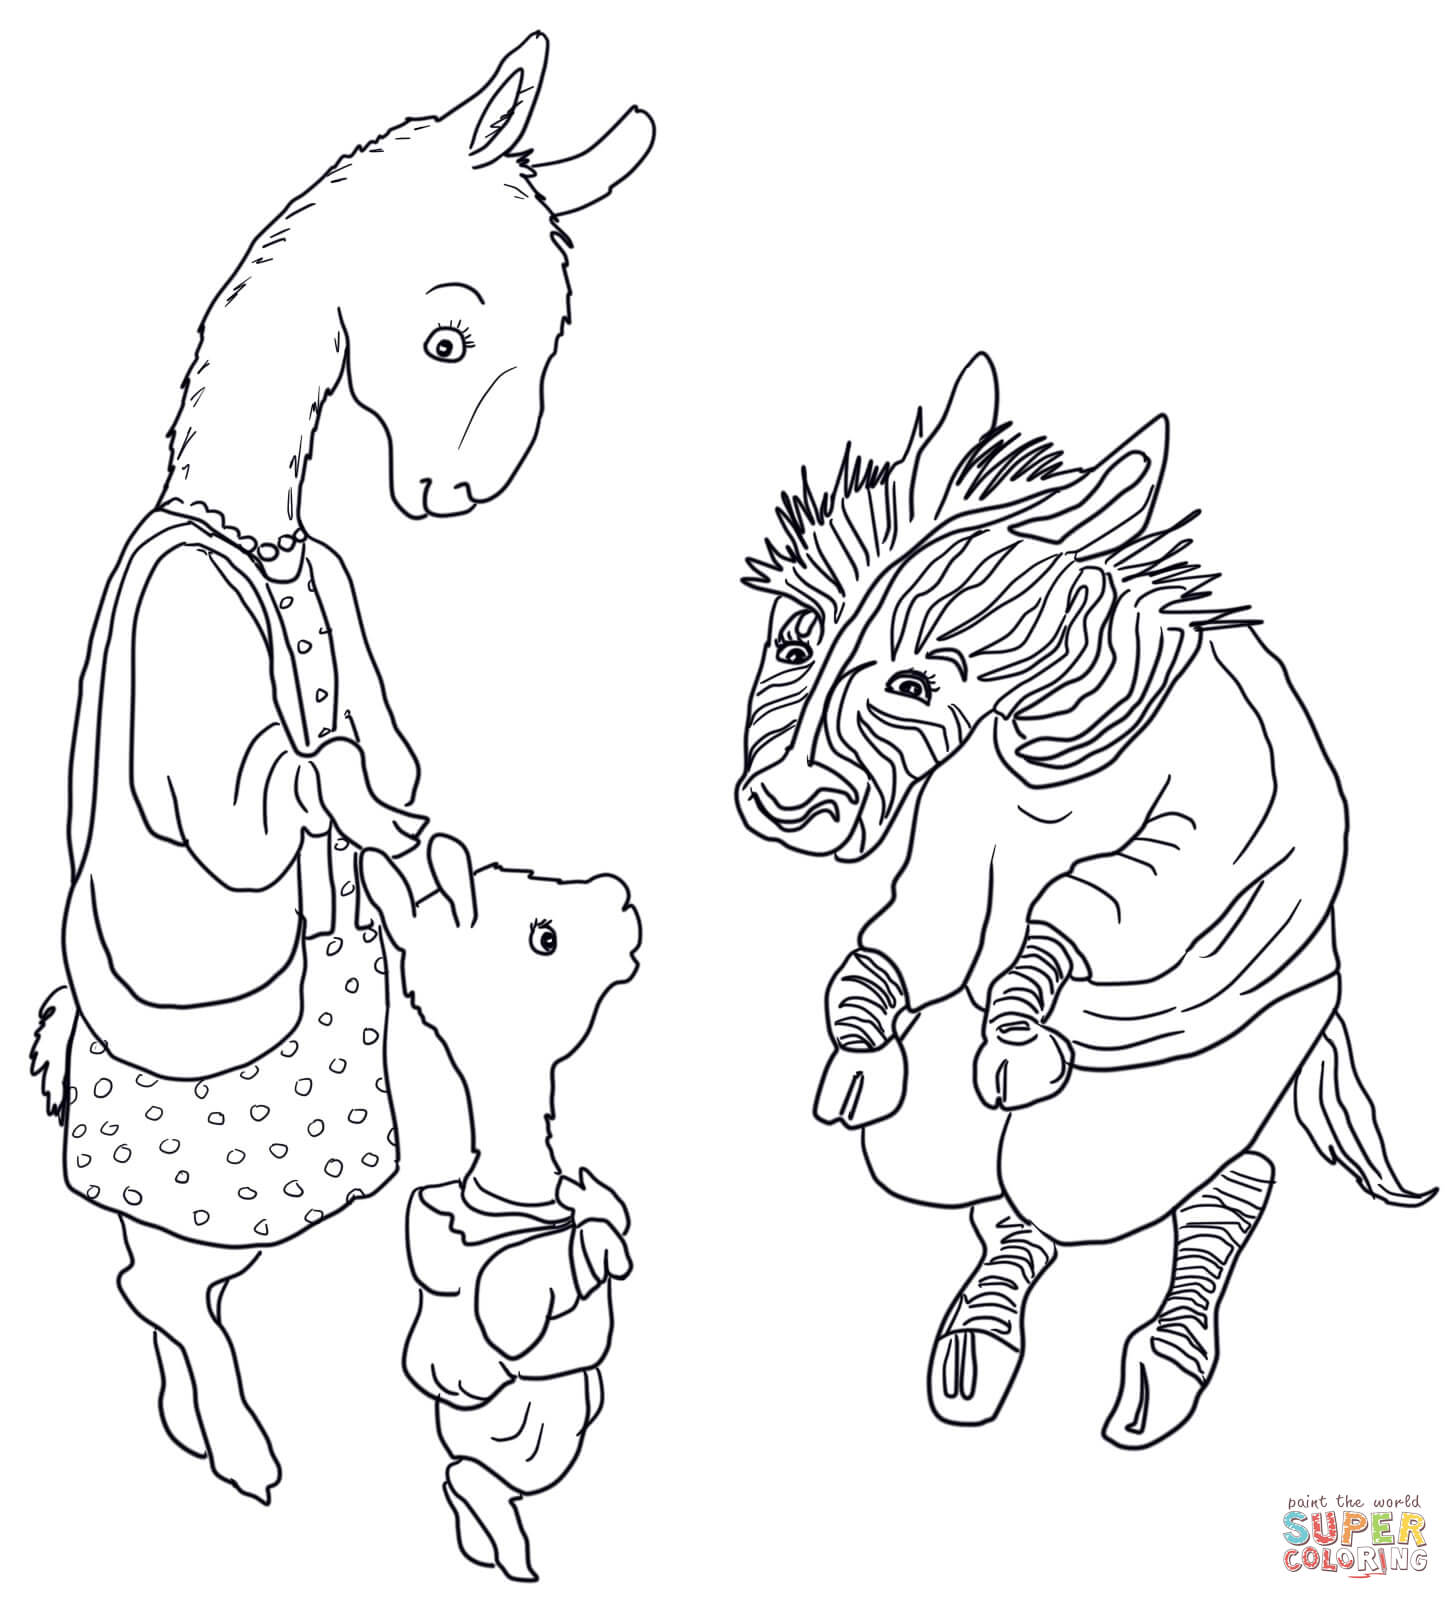 Llama Llama Red Pajama Coloring Page Free Printable Coloring Pages